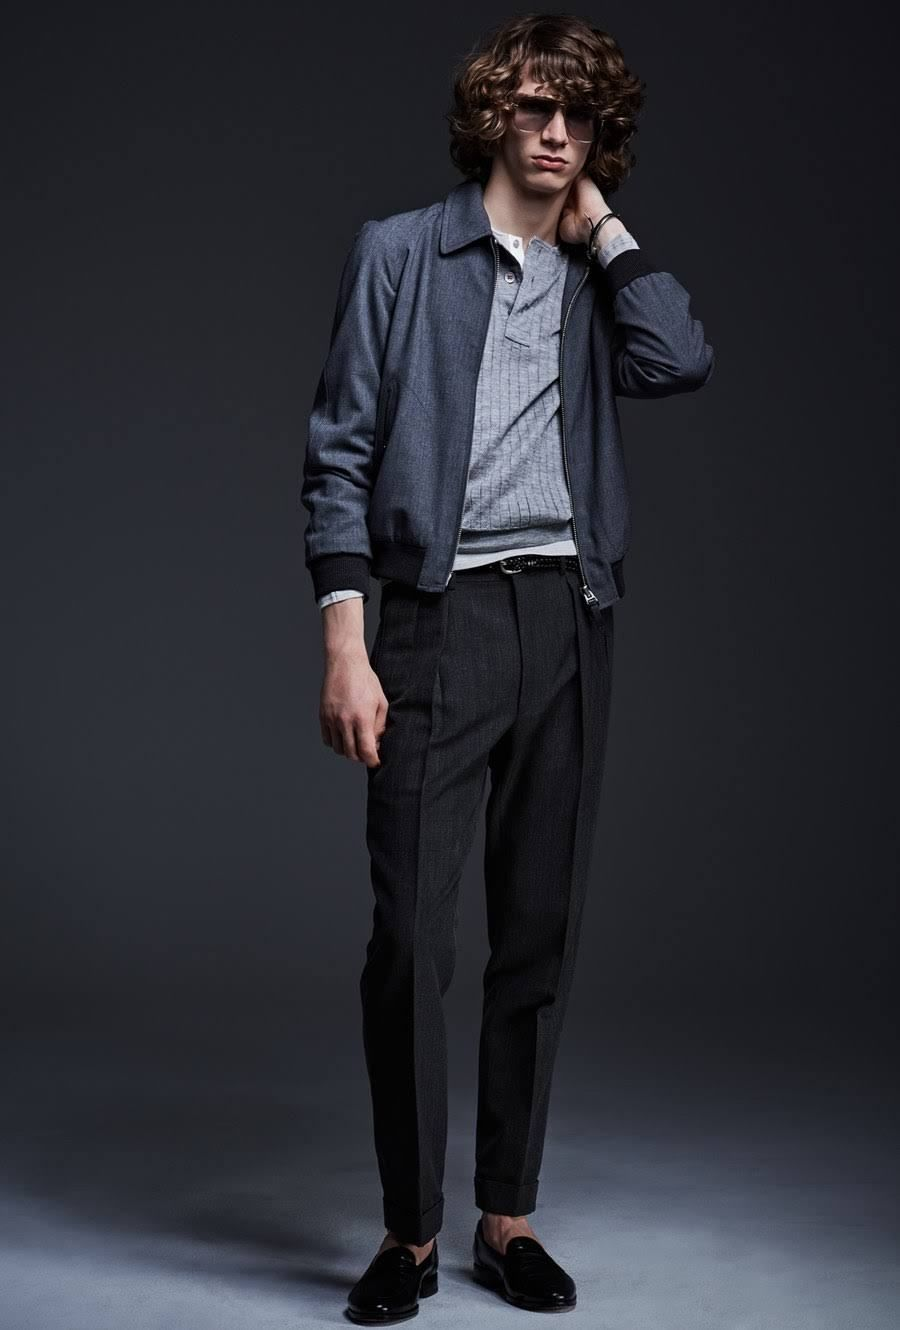 Tom Ford Ss17 Spring Summer 2017 Collection Blue Tailored Casual Men' Fashion